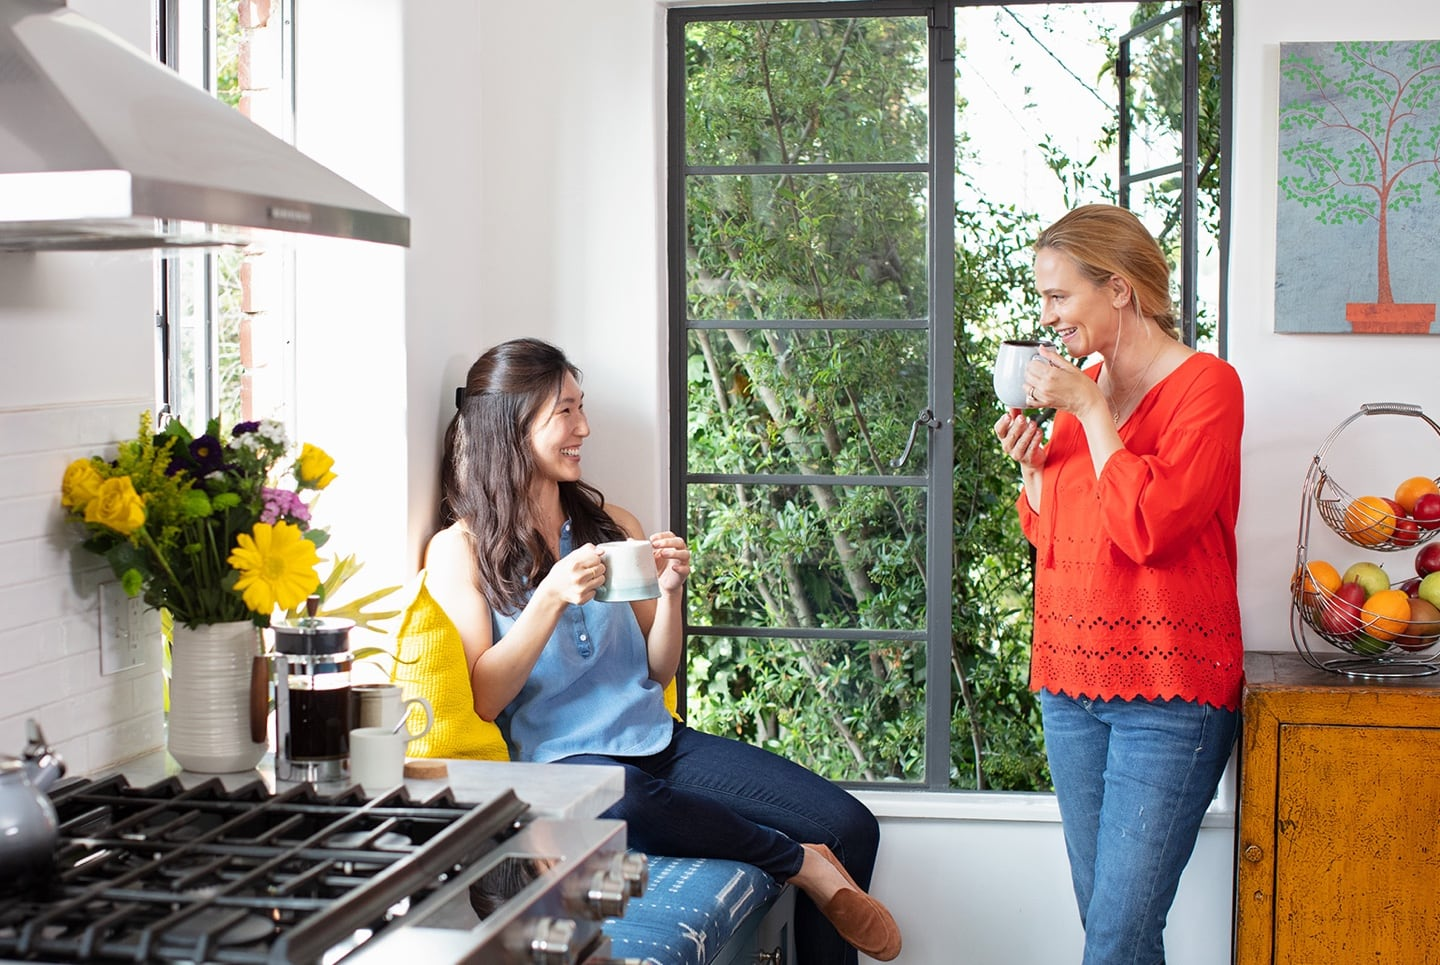 Two women talking in a kitchen while drinking tea or coffee